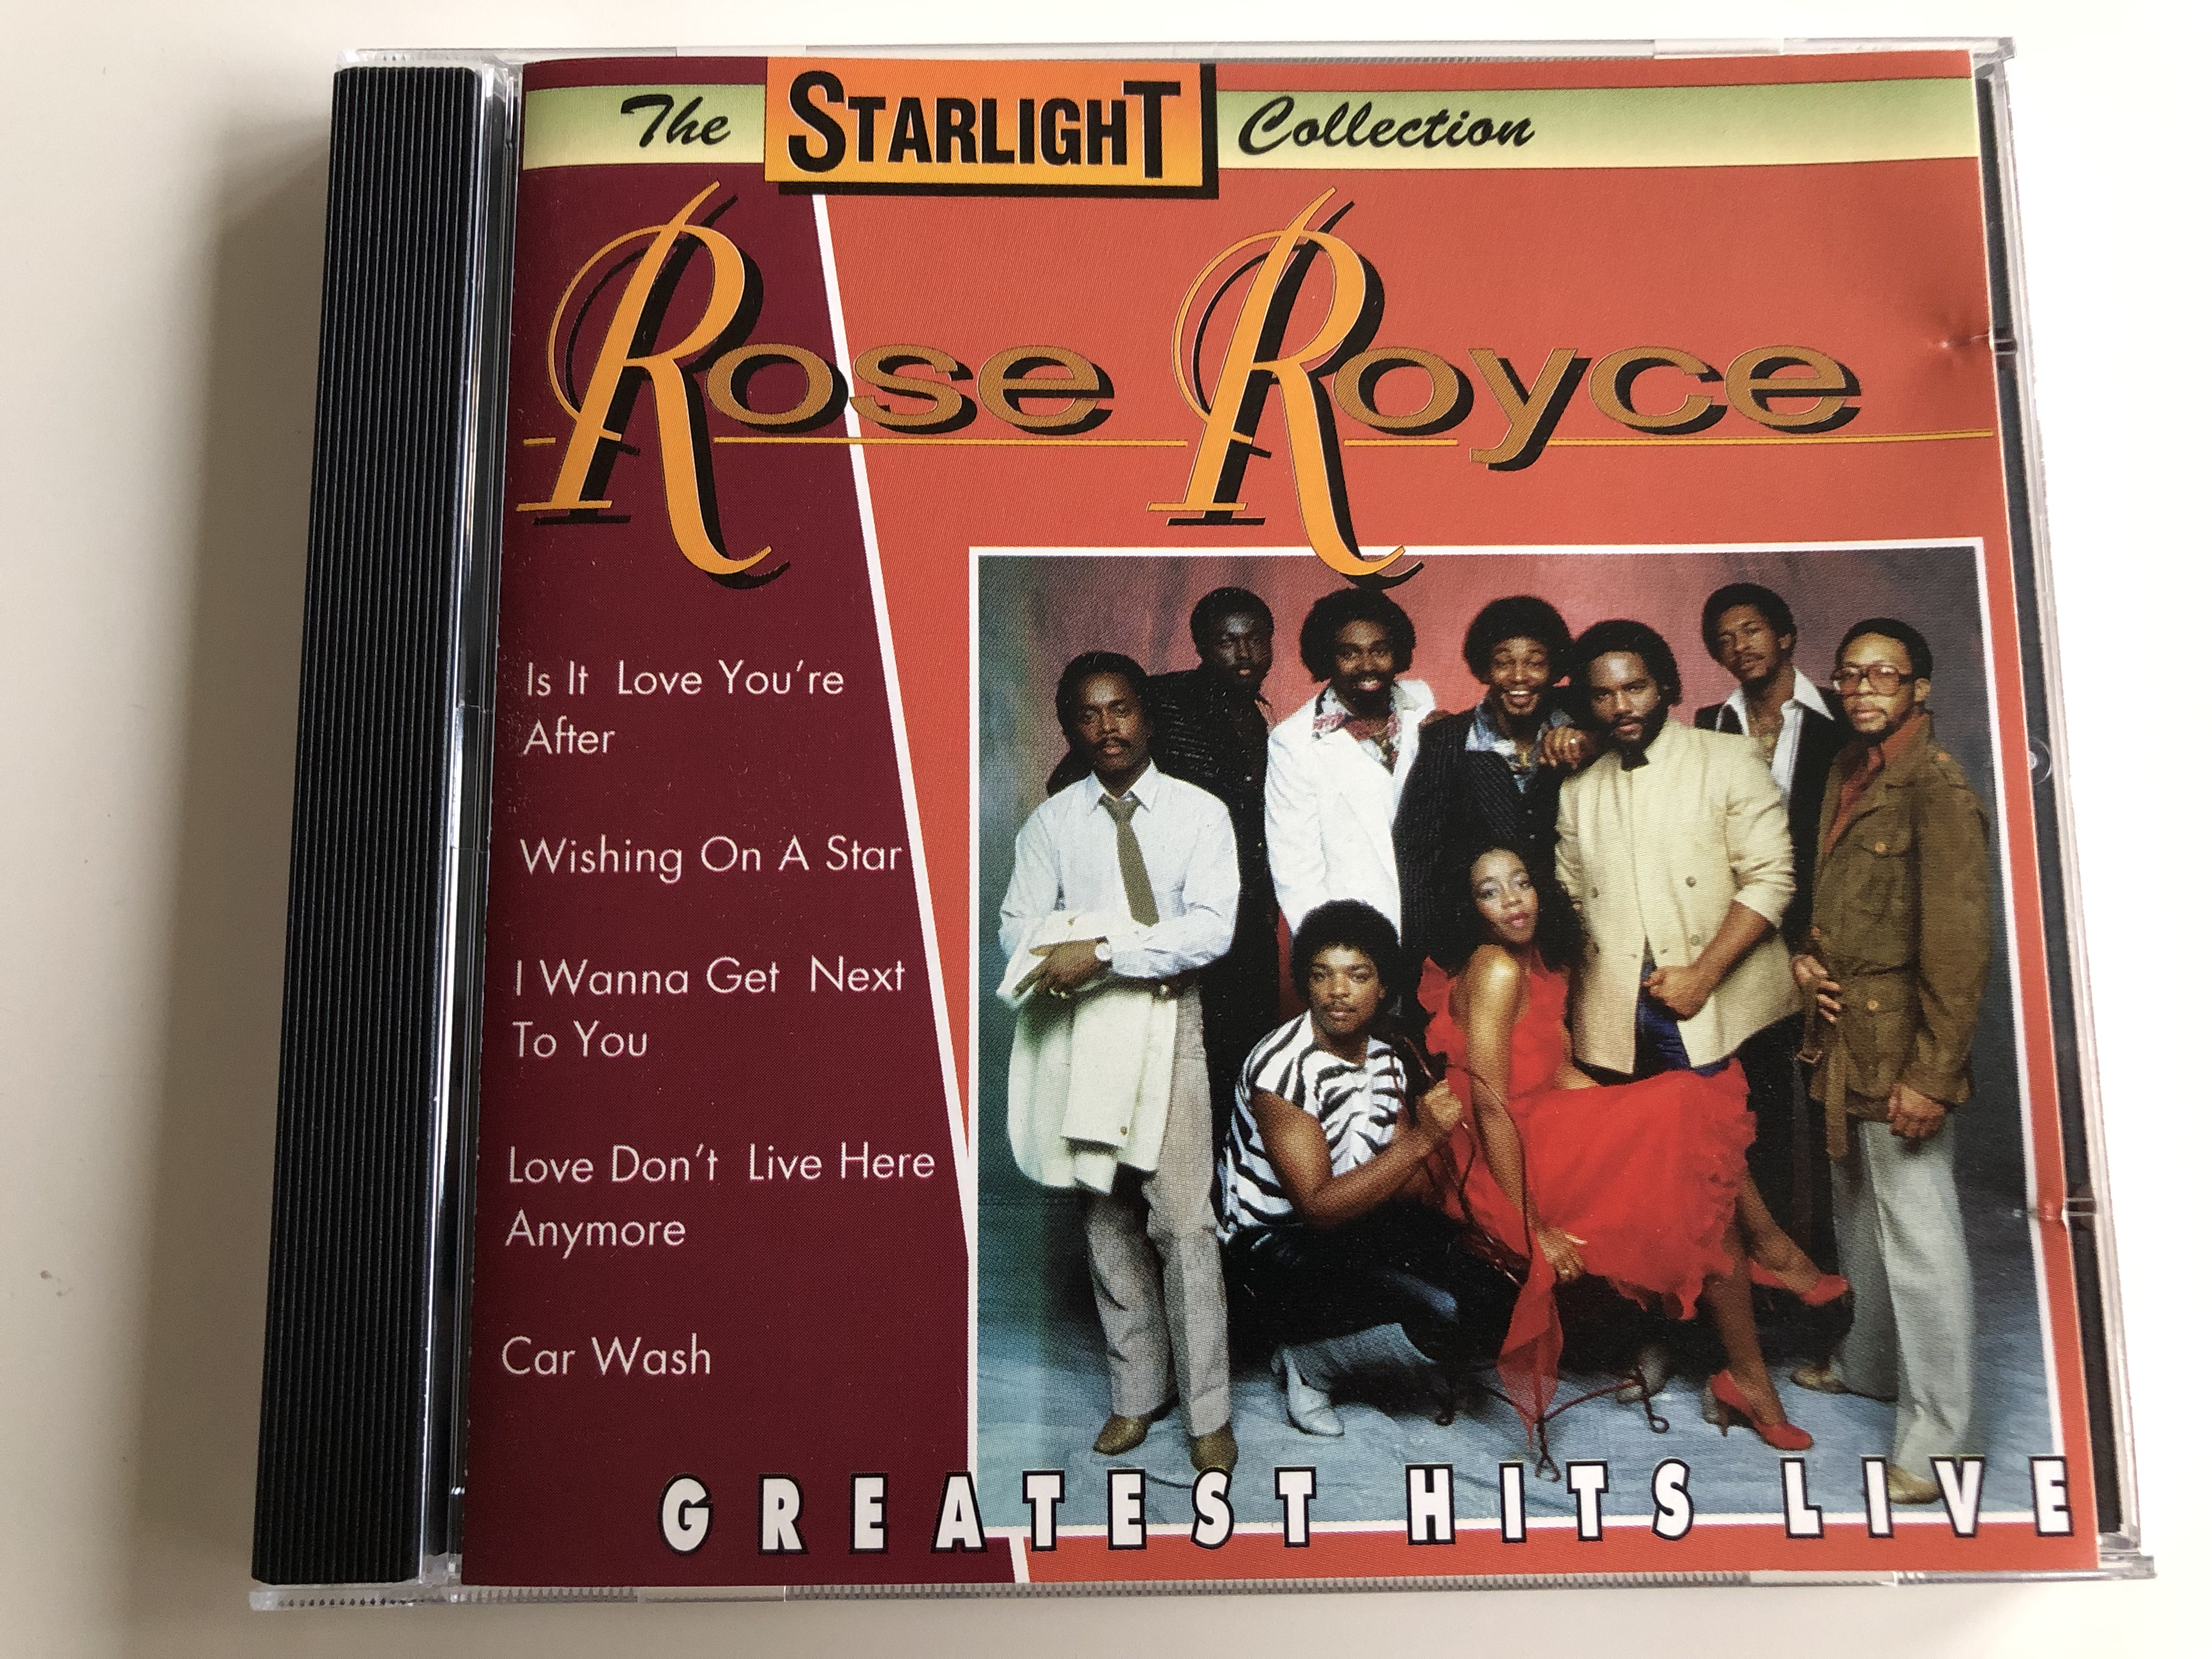 rose-royce-greatest-hits-live-audio-cd-1994-is-it-love-you-re-after-wishing-on-a-star-i-wanna-get-next-to-you-love-don-t-live-here-anymore-car-wash-the-starlight-collection-1-.jpg